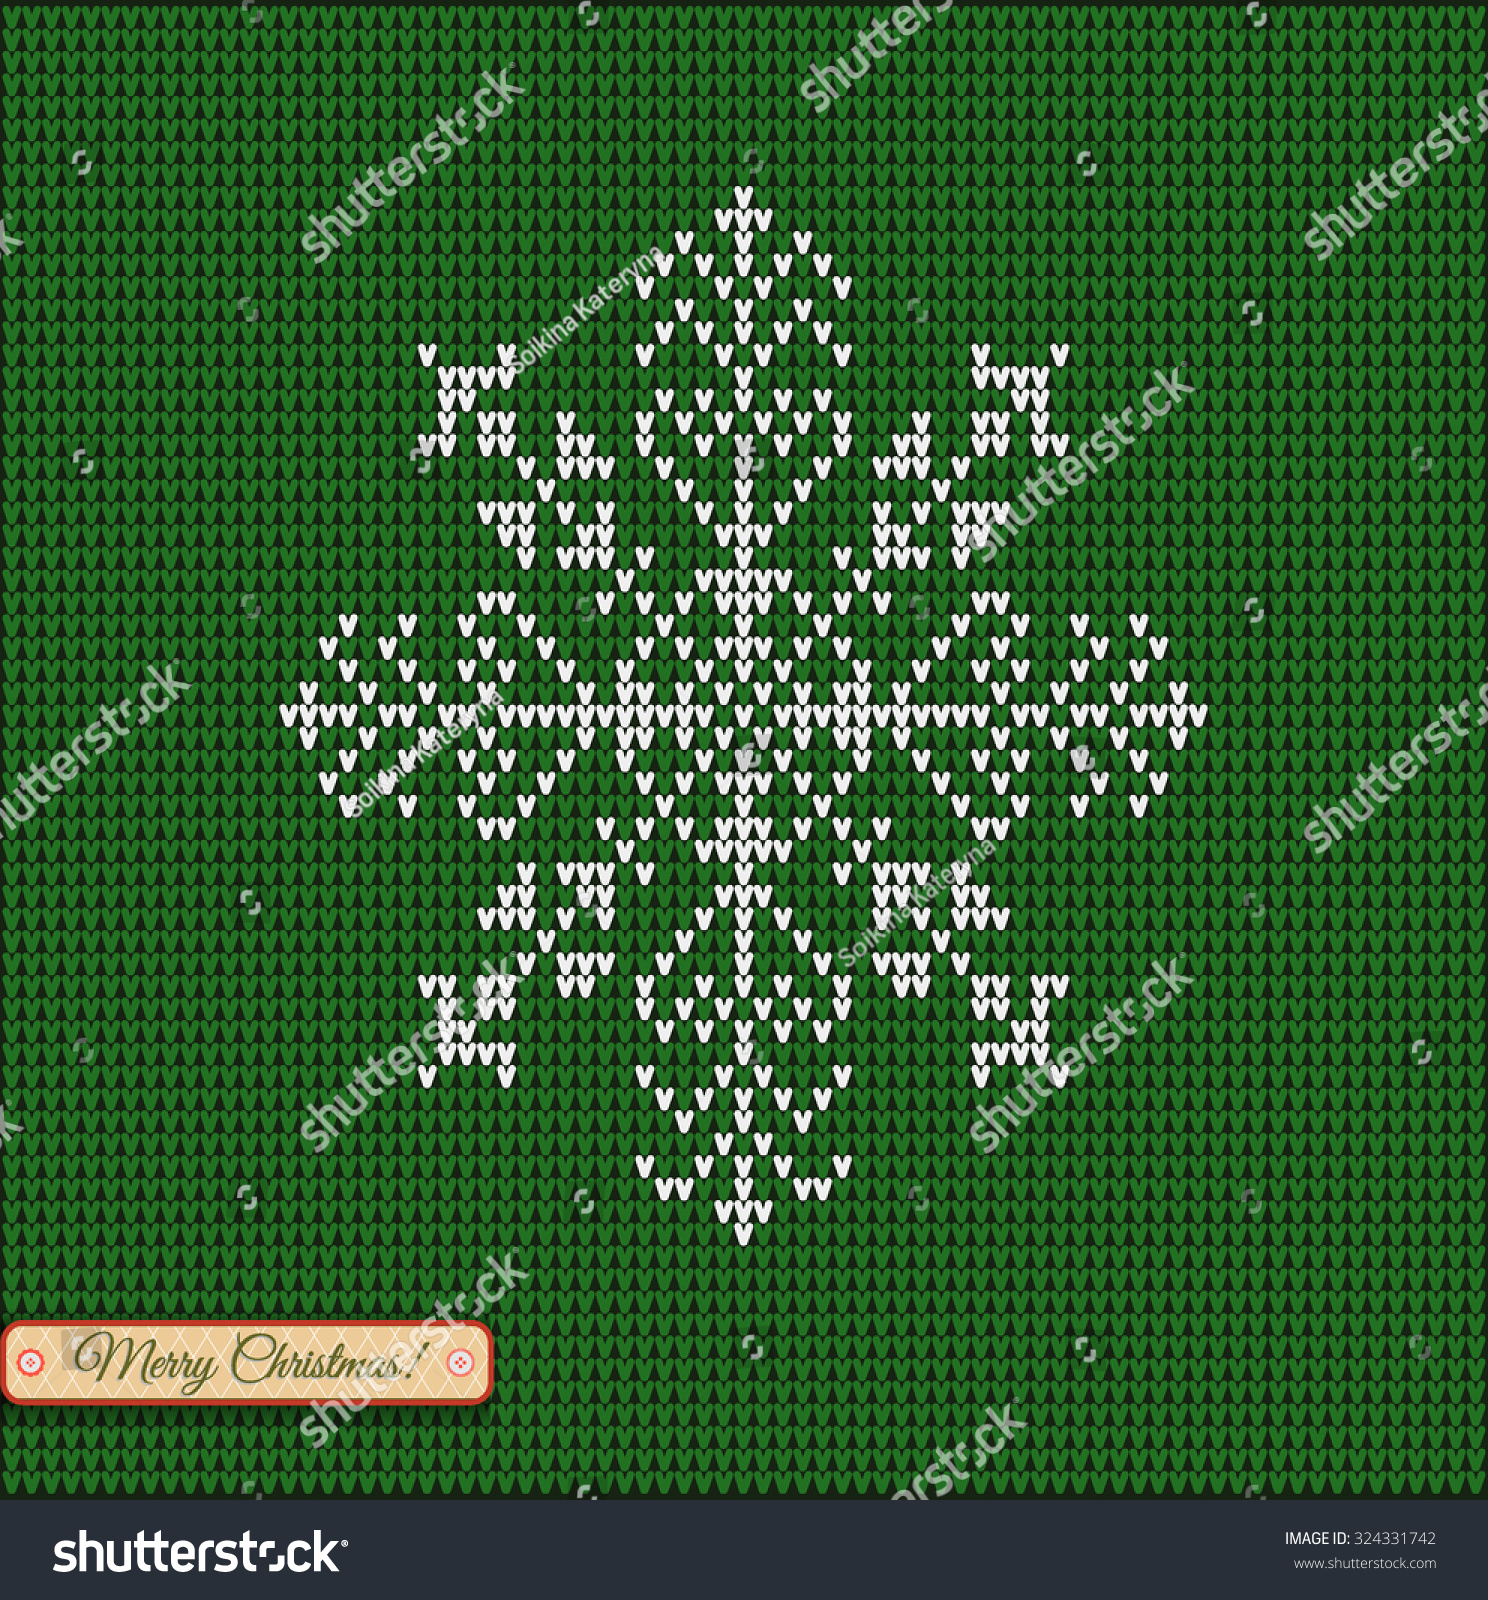 Snowflake Jumper Knitting Pattern : Christmas Star Snowflake Merry Christmas Scandinavian Stock Vector 324331742 ...